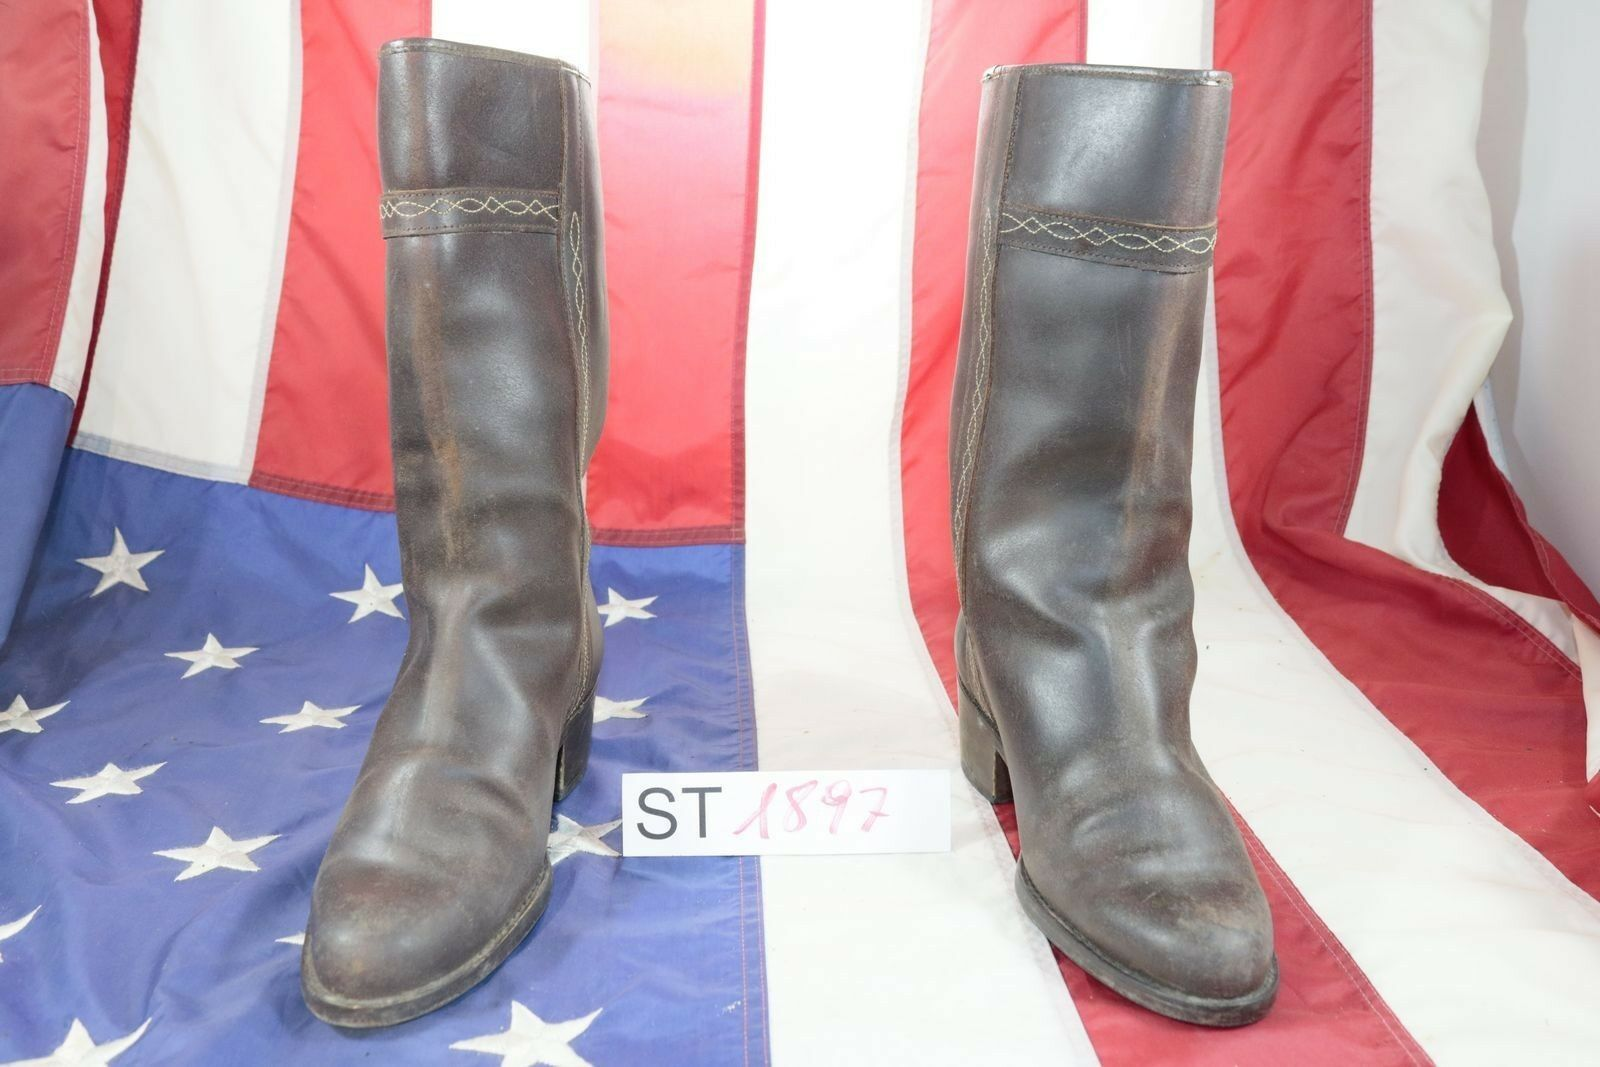 Boots Roberto garruno Valgreen (cod. st1897) used n.40 Womens Brown Leather